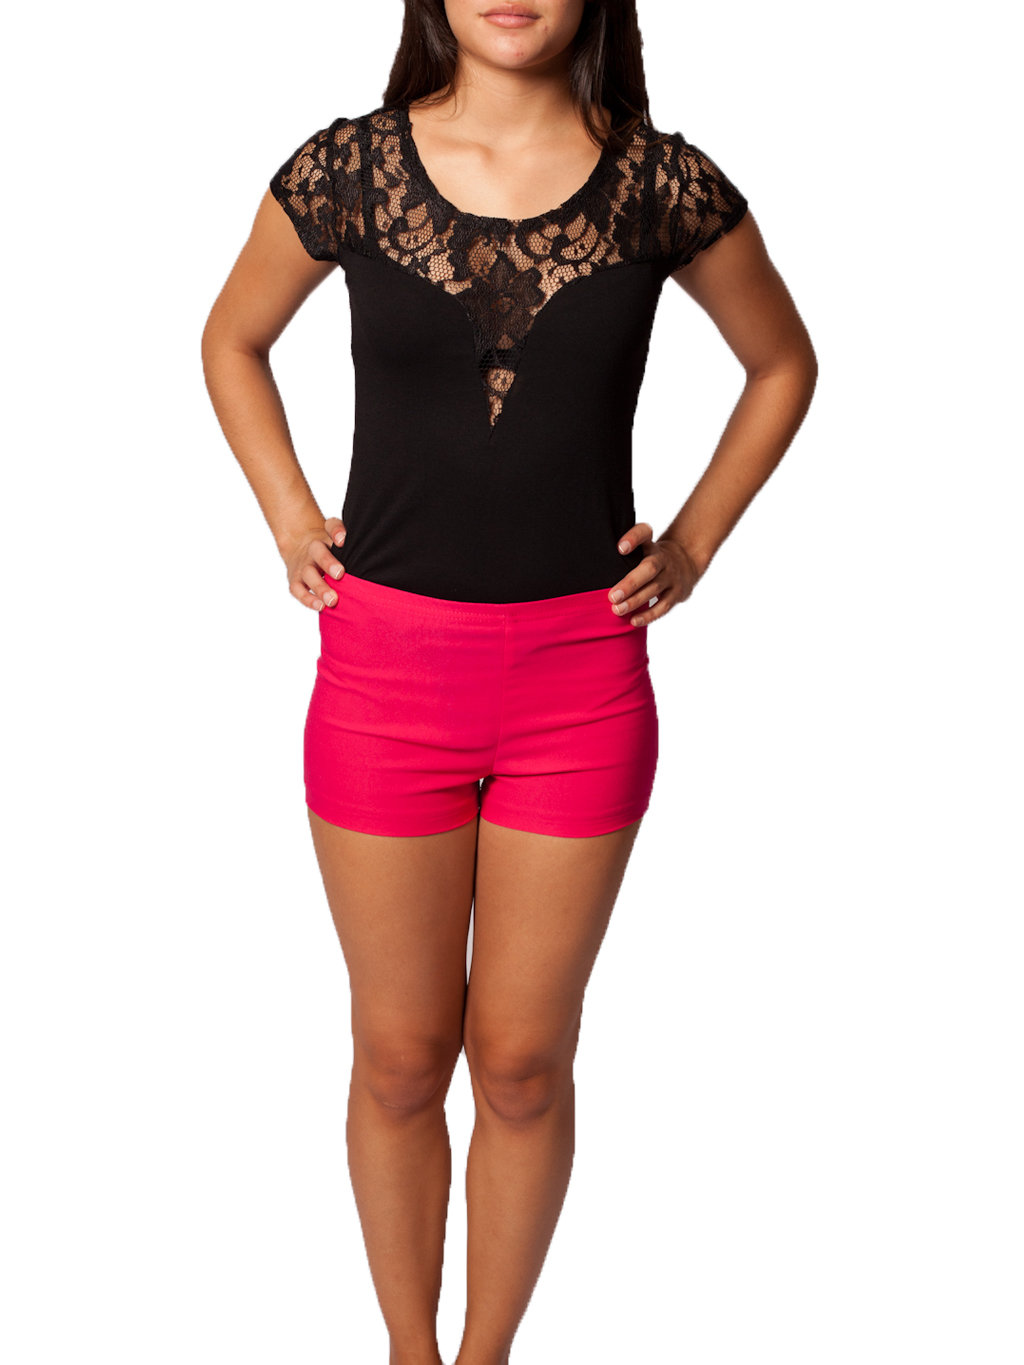 Tops / Tank Tops / Black Lace Body Suit - Ocd Clothes Co. on Wanelo